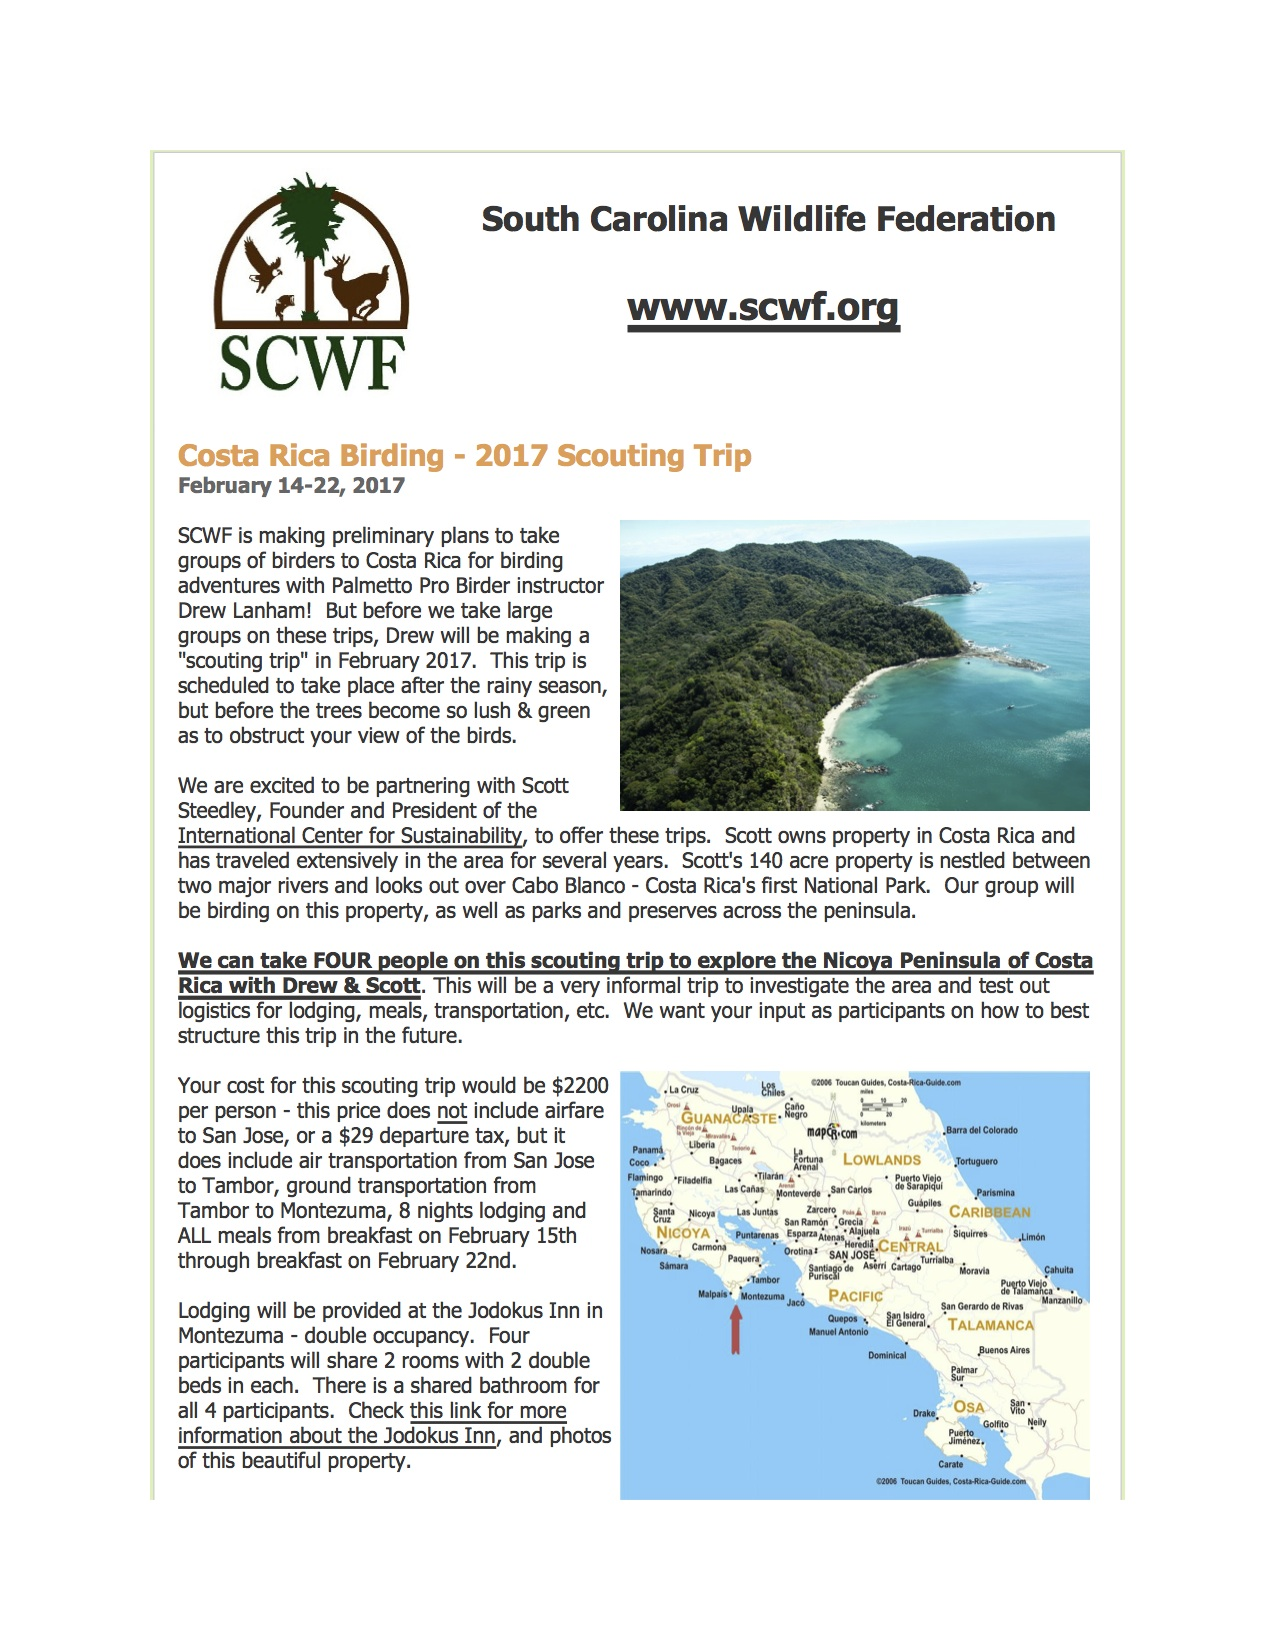 National Wildlife Federation- Collaboration w/ICS, Inc. and Dr. Drew Lanham